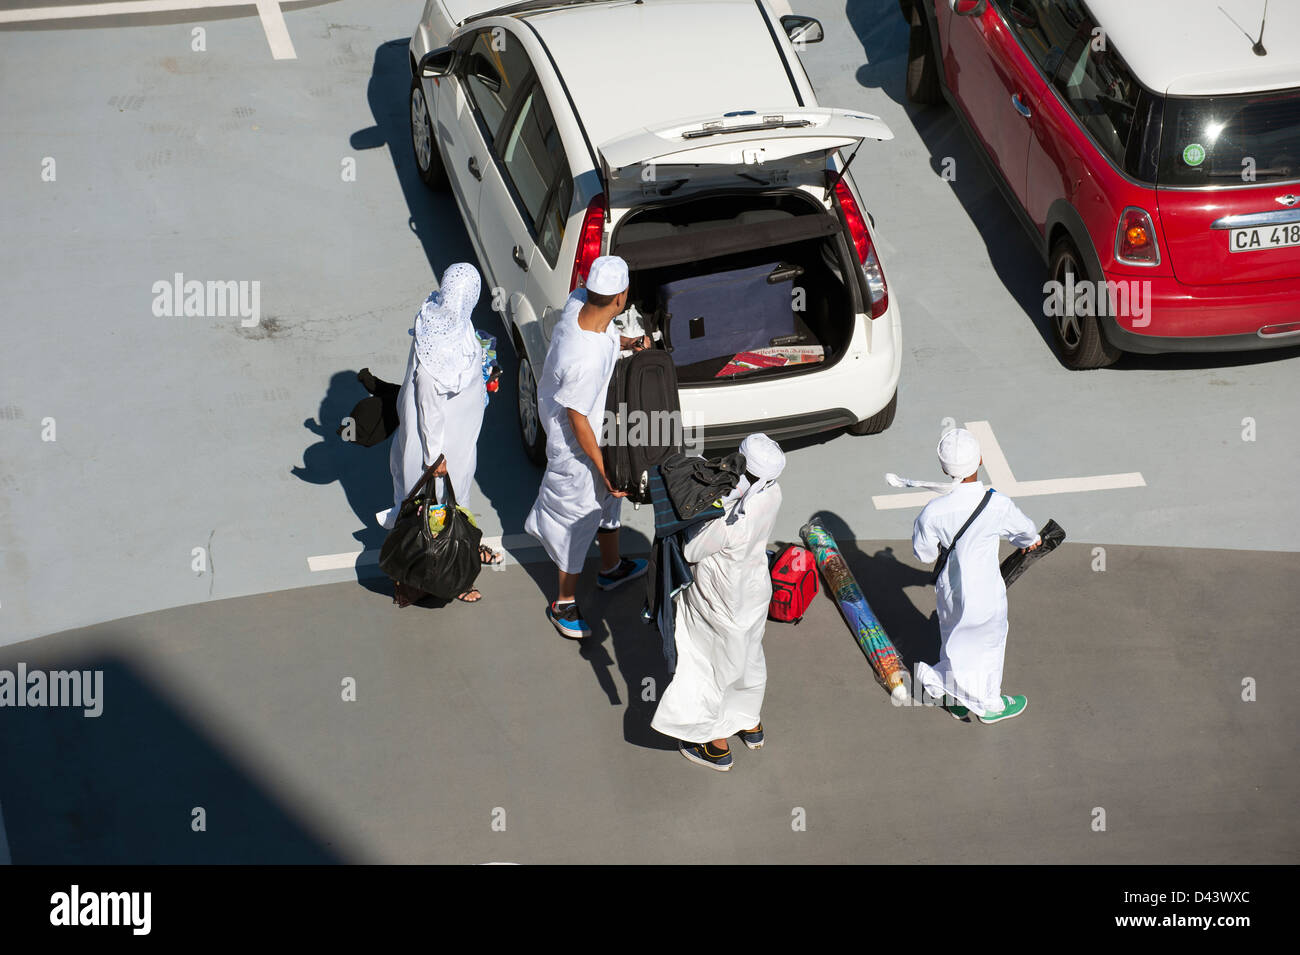 Muslim family wearing traditional white clothing packing the boot of a hire car - Stock Image